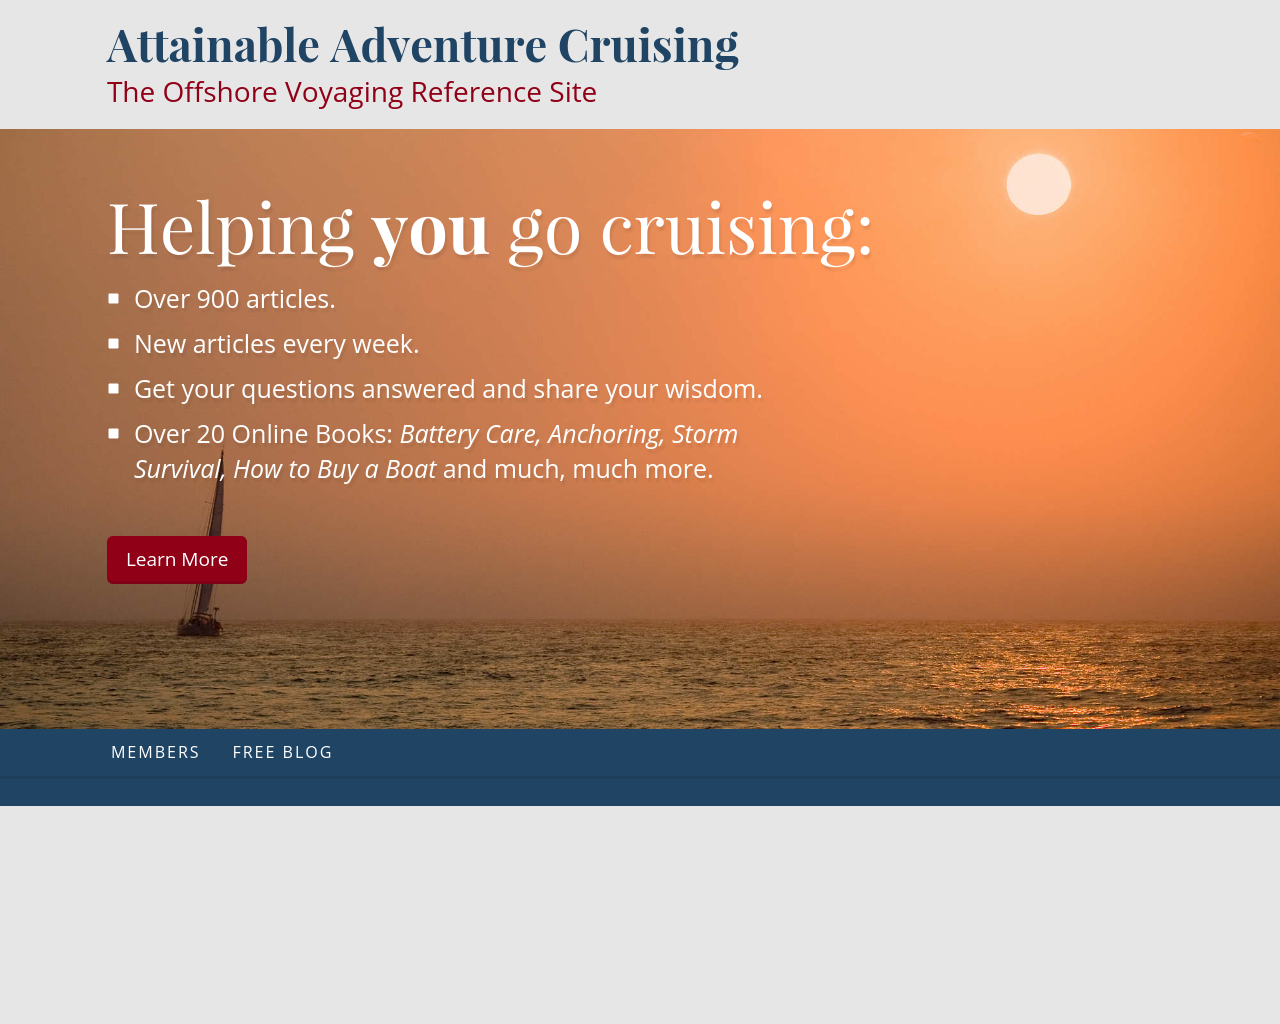 Attainable-Adventure-Cruising--The-Offshore-Voyaging-Reference-Site-Advertising-Reviews-Pricing